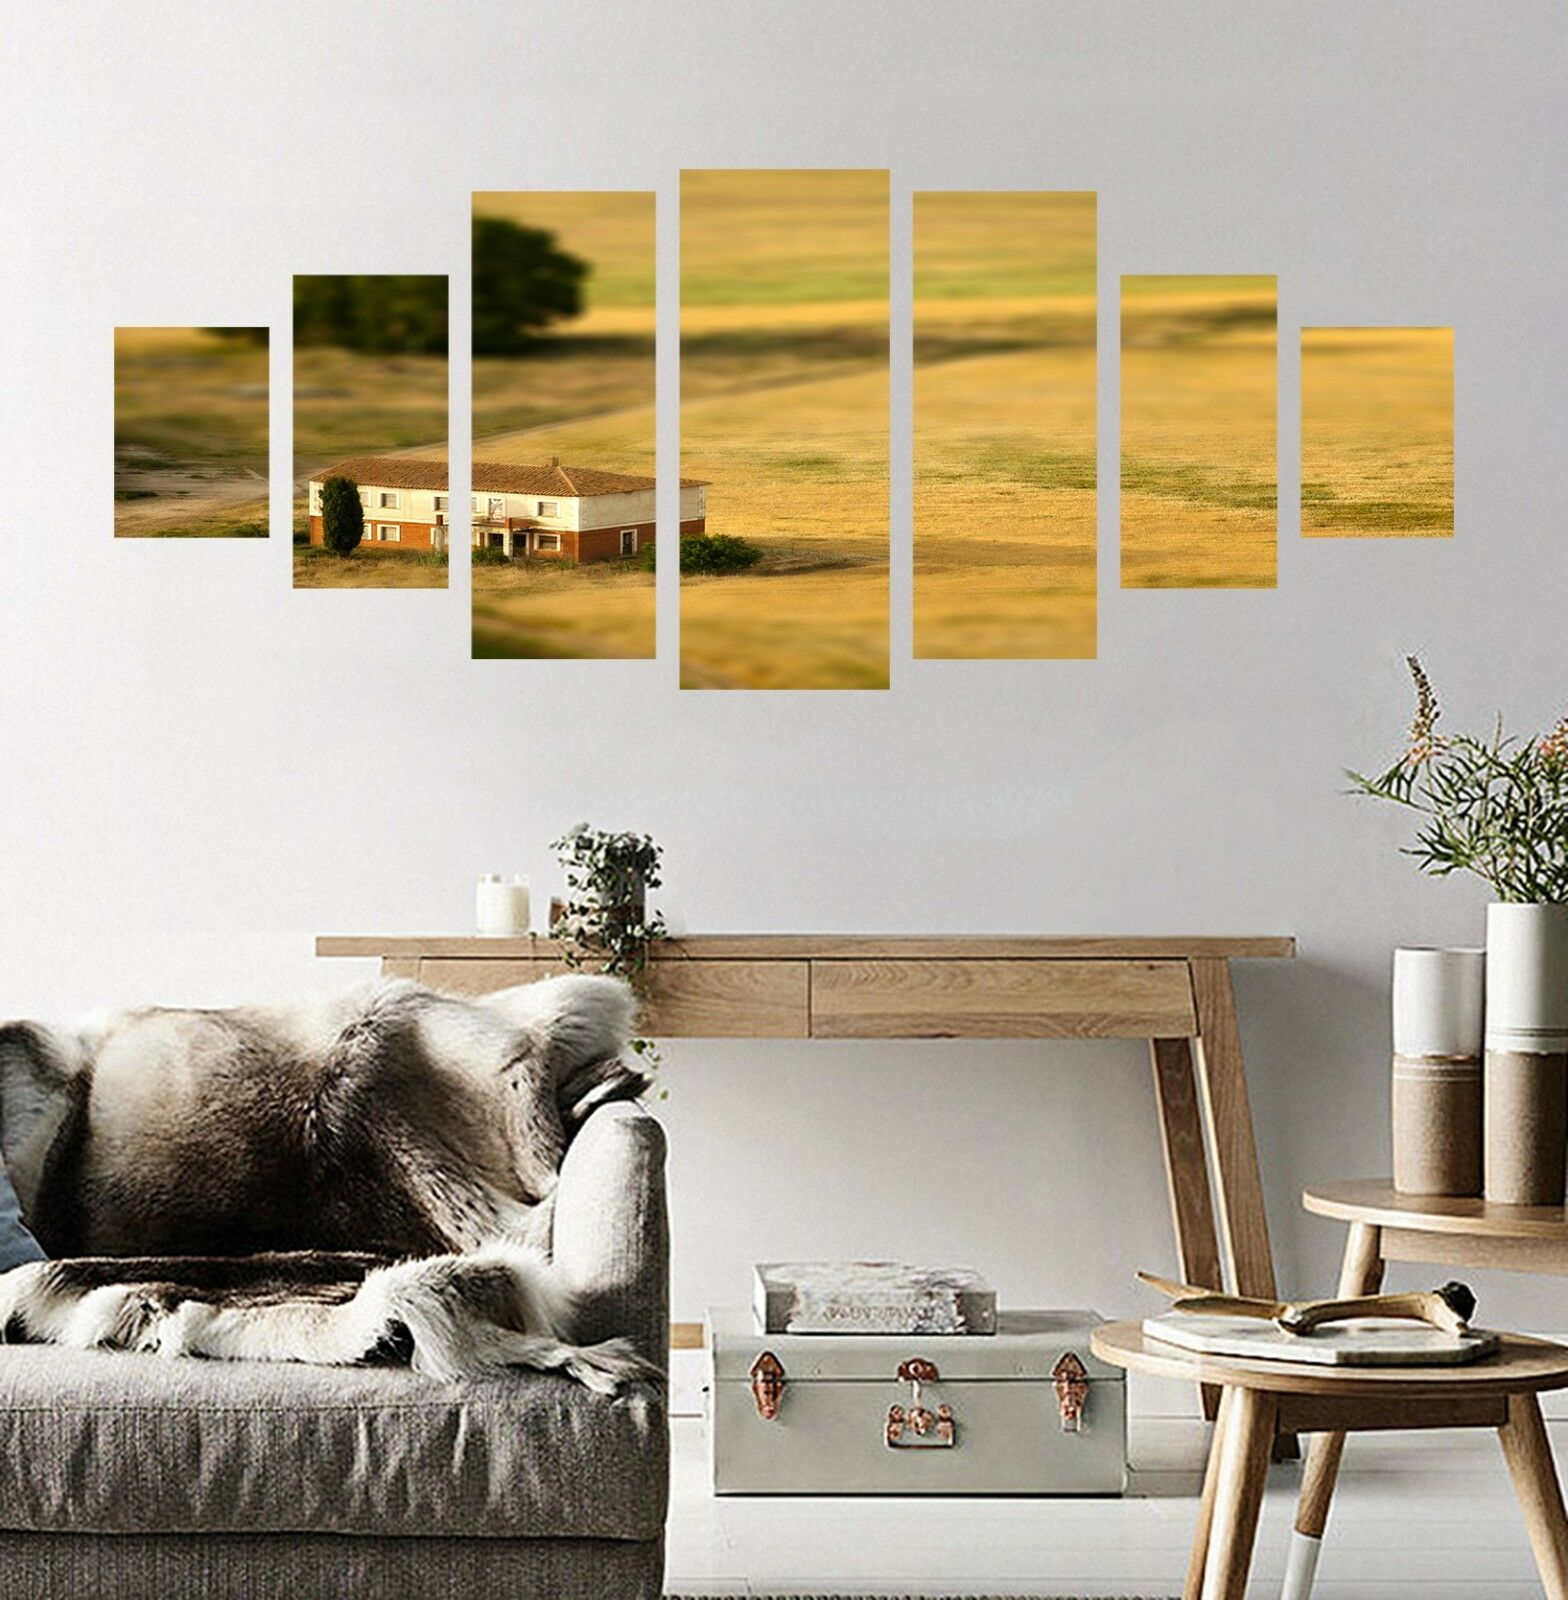 3D House Prairie 82 Unframed Print Wall Paper Decal Wall Deco Indoor AJ Jenny